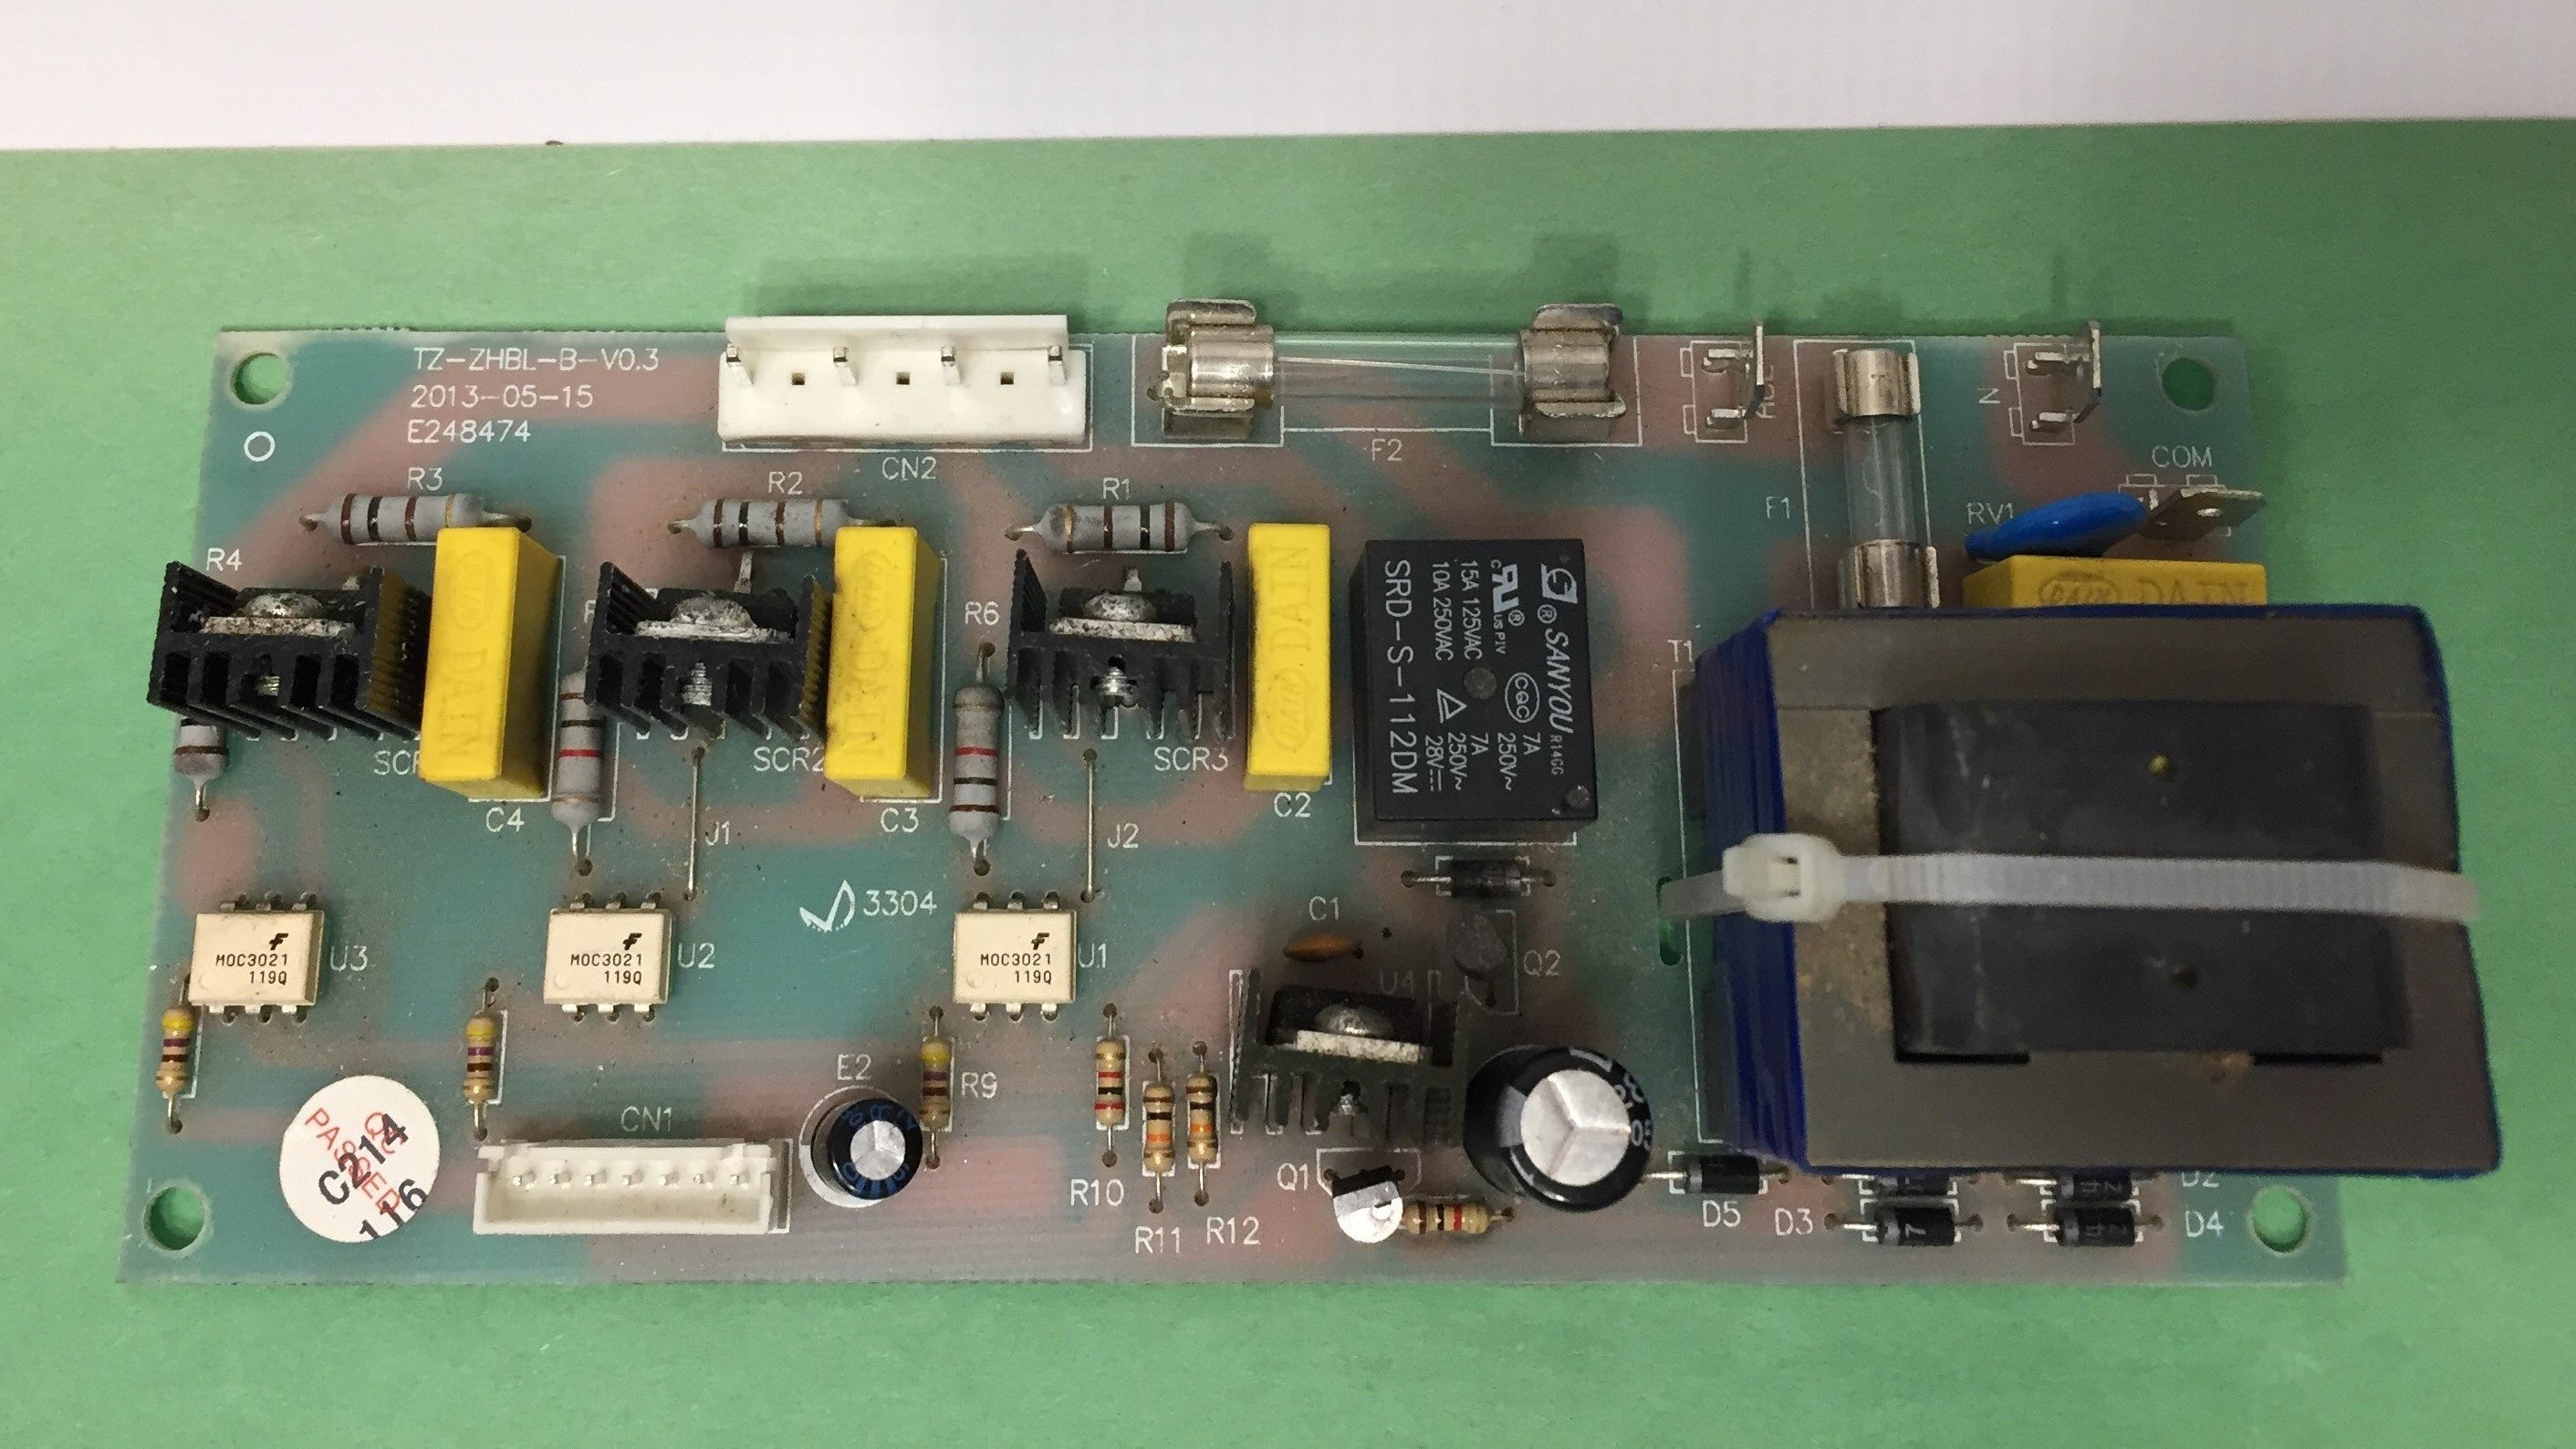 US Stove Company (USSC) Ashley 5660 Control Board - Repair TZ-ZHBL-B-V0.3